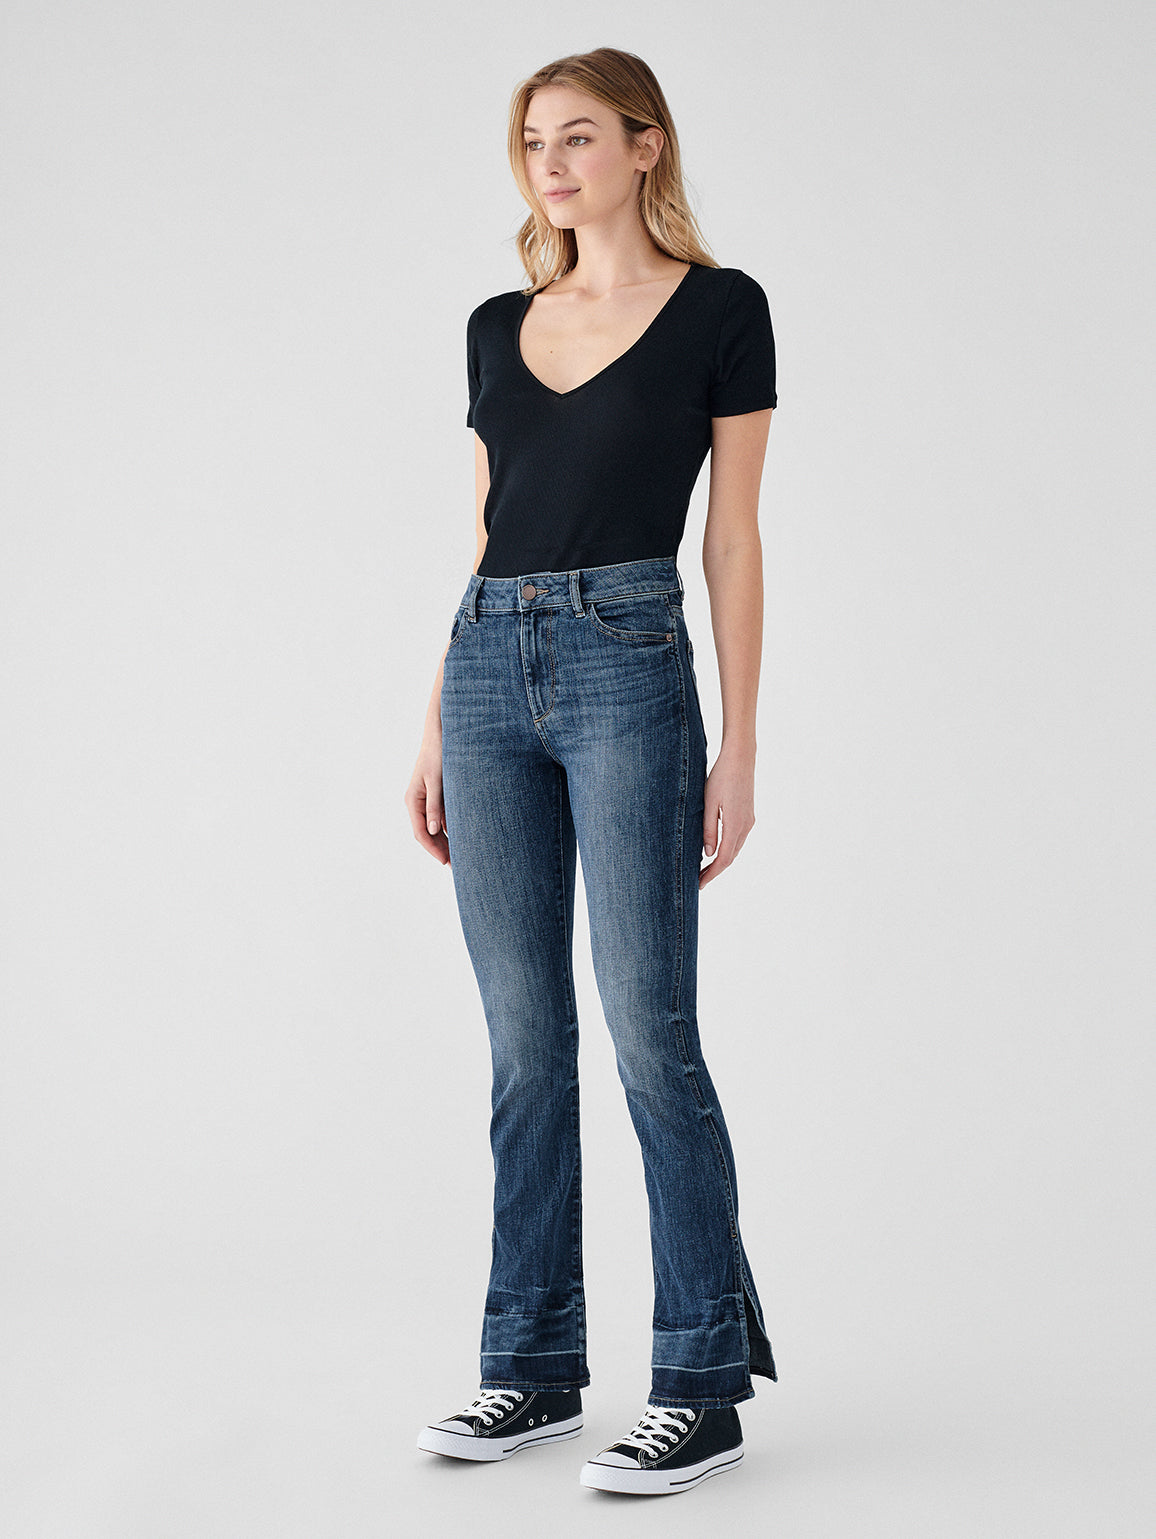 Bridget High Rise Bootcut 31"